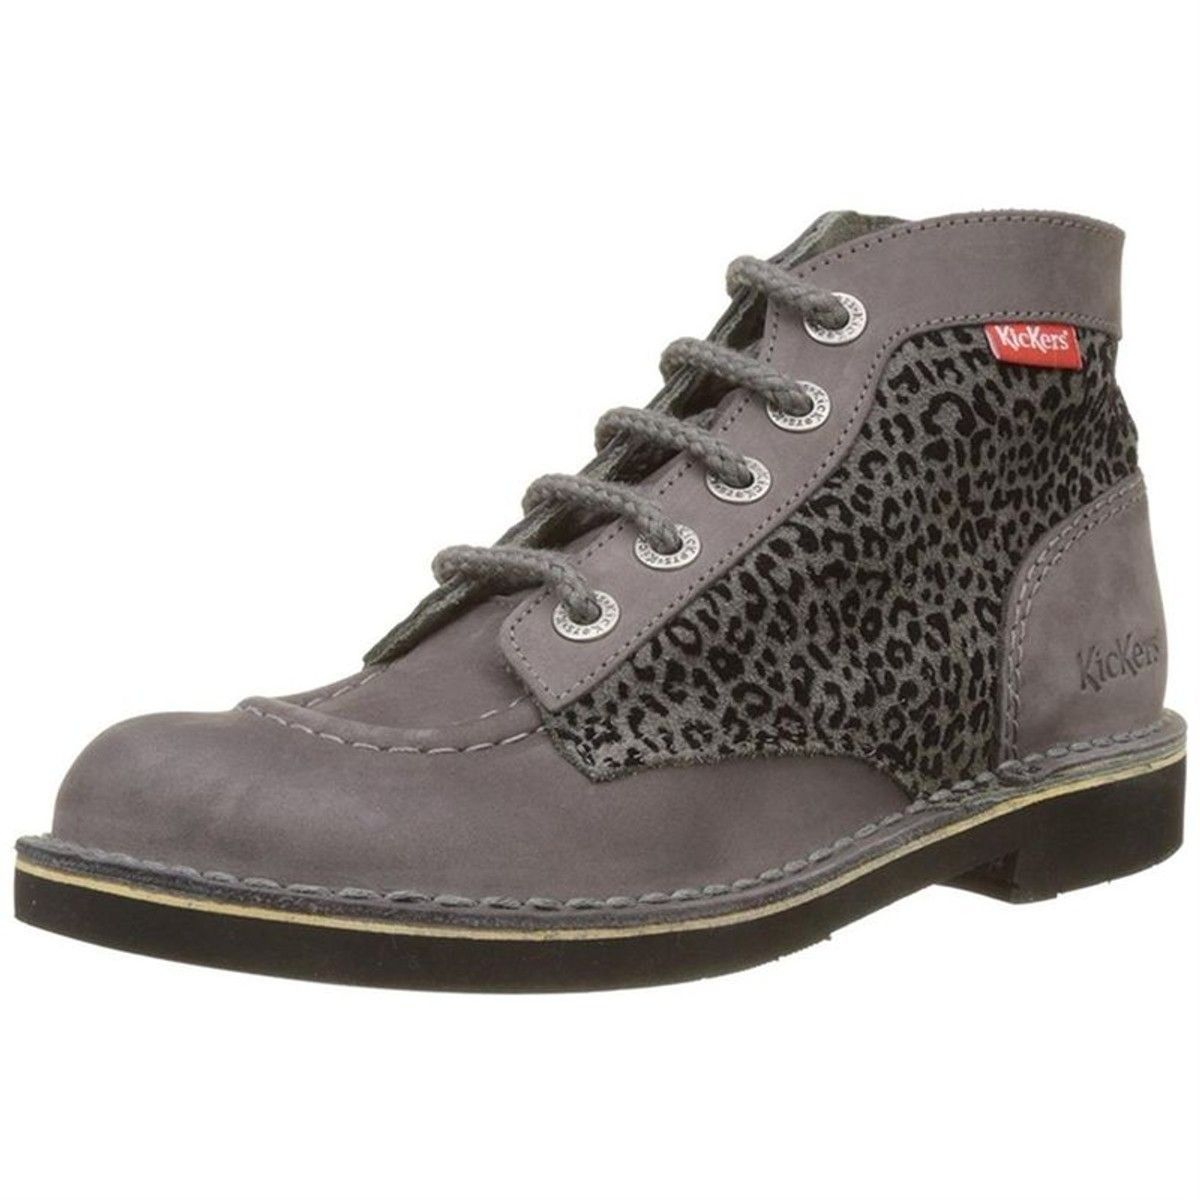 Cuir Bottines Taille35ProductsBoots Taille35ProductsBoots cuir cuir Cuir Boots Bottines Boots fyvbI76Yg